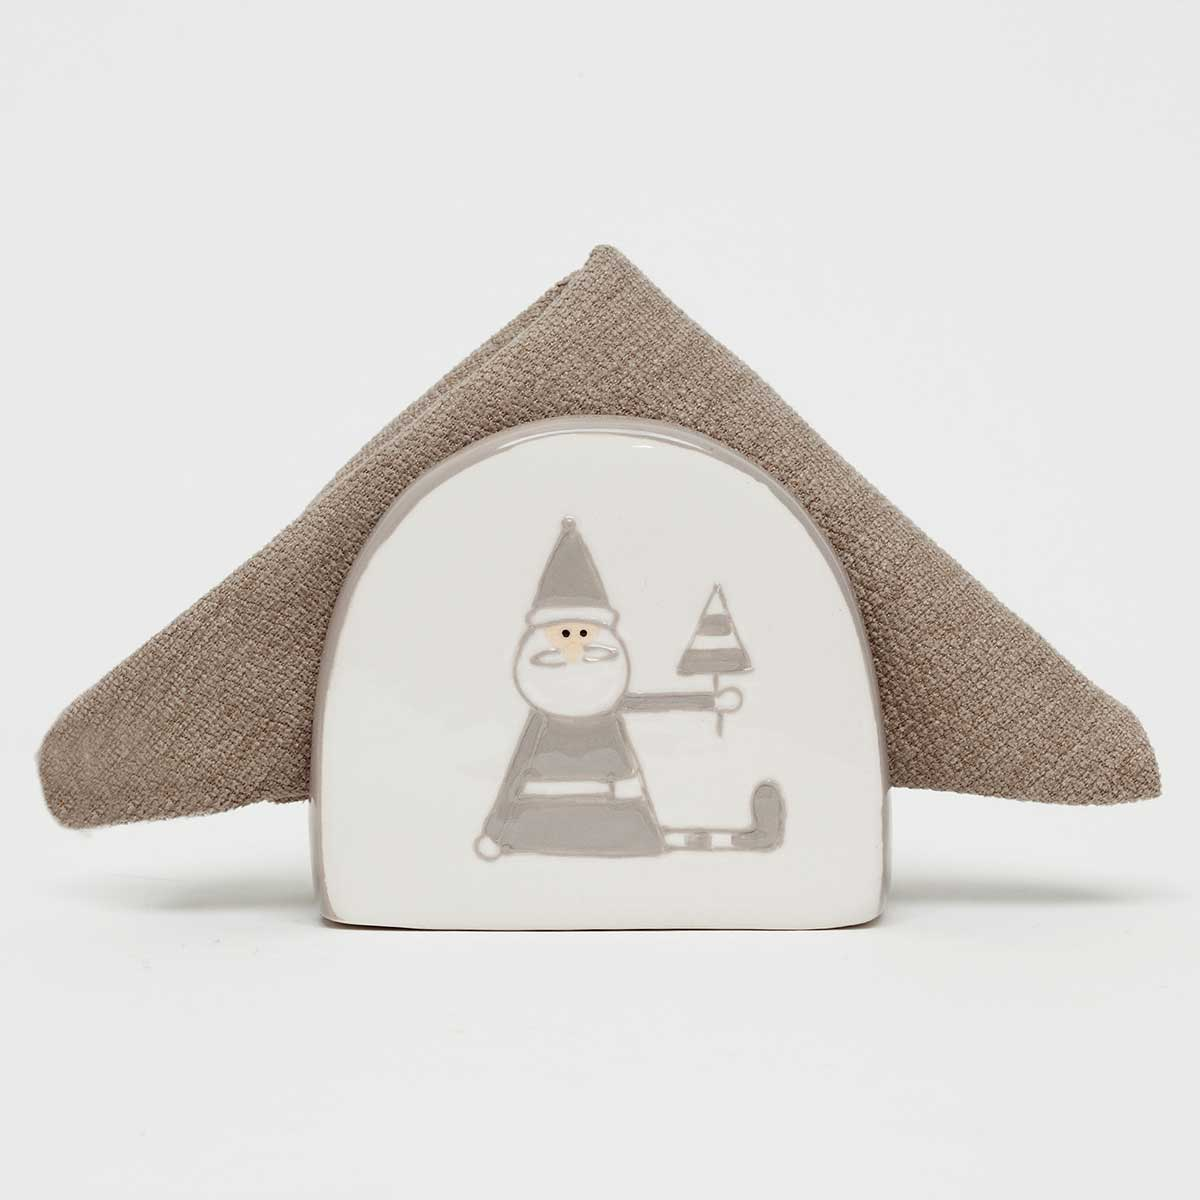 "SANTA AND DEER DUO NAPKIN HOLDER 3.5""X2""X3"""